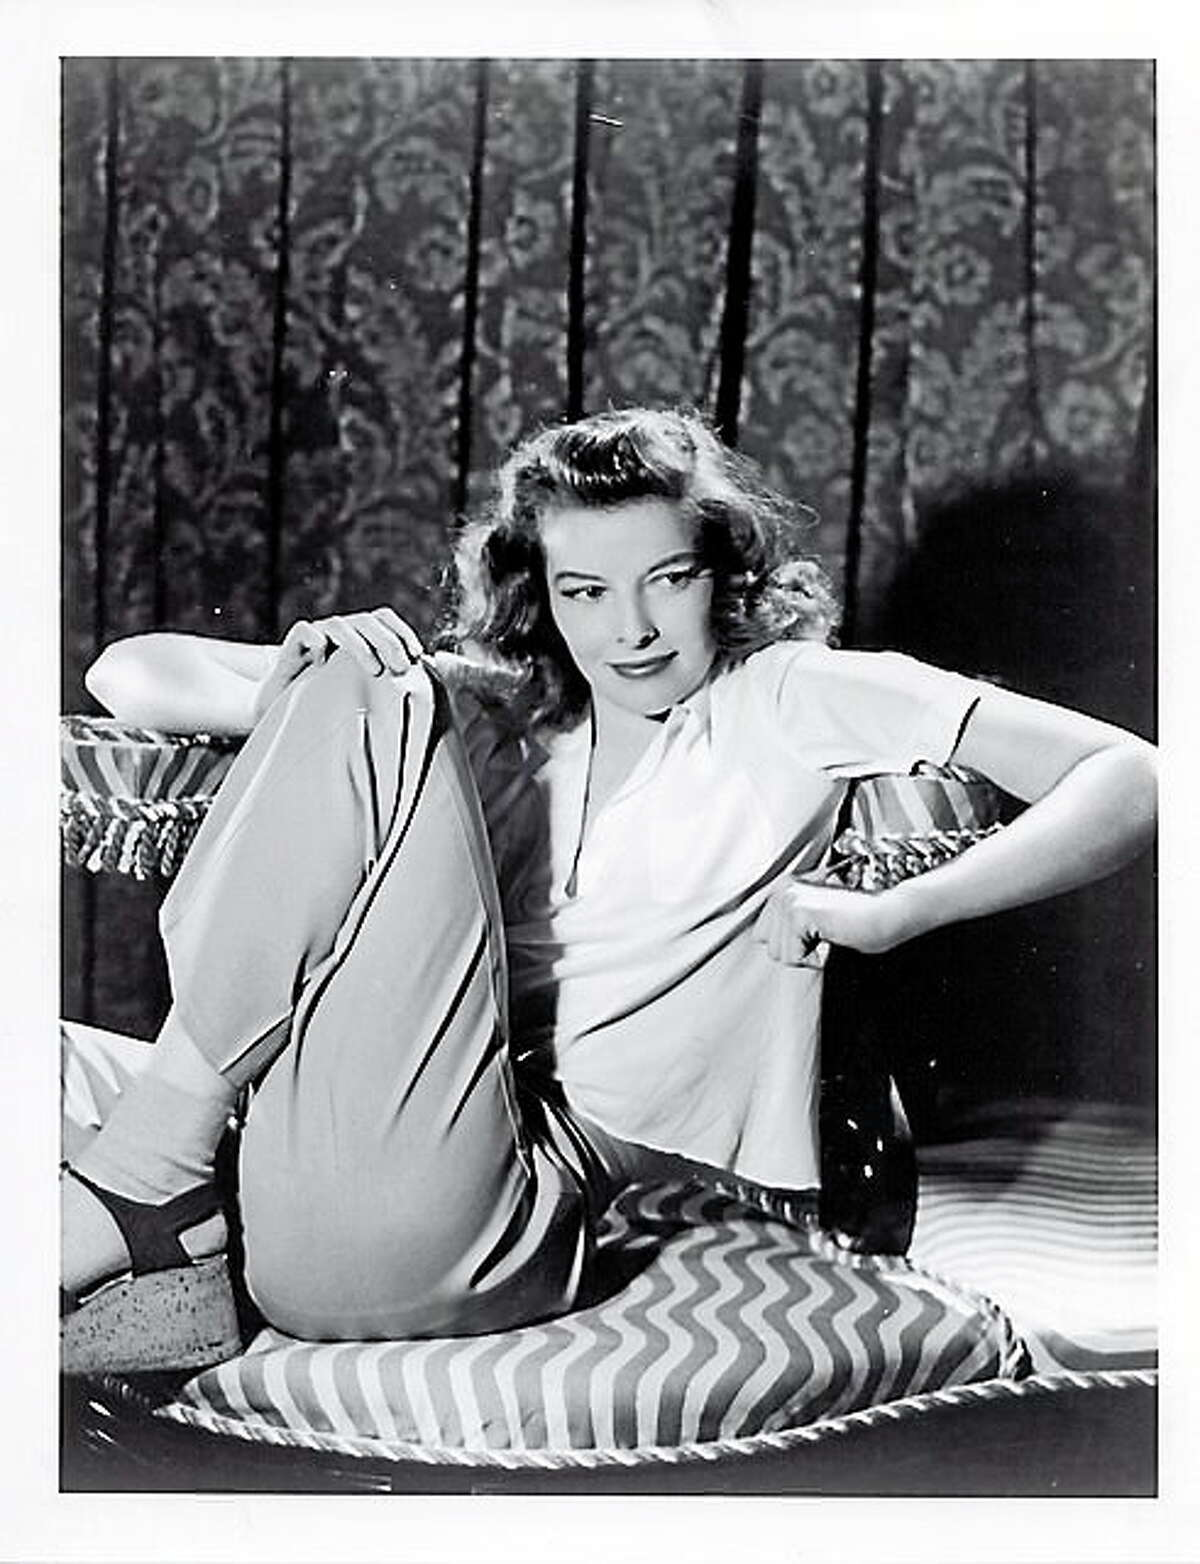 All rights reserved, CT Historical Society Katharine Hepburn: Dressed for Stage and Screen, opens April 11 in Hartford, featuring the First Lady of Cinema's photographs and clothing from her memorable films.